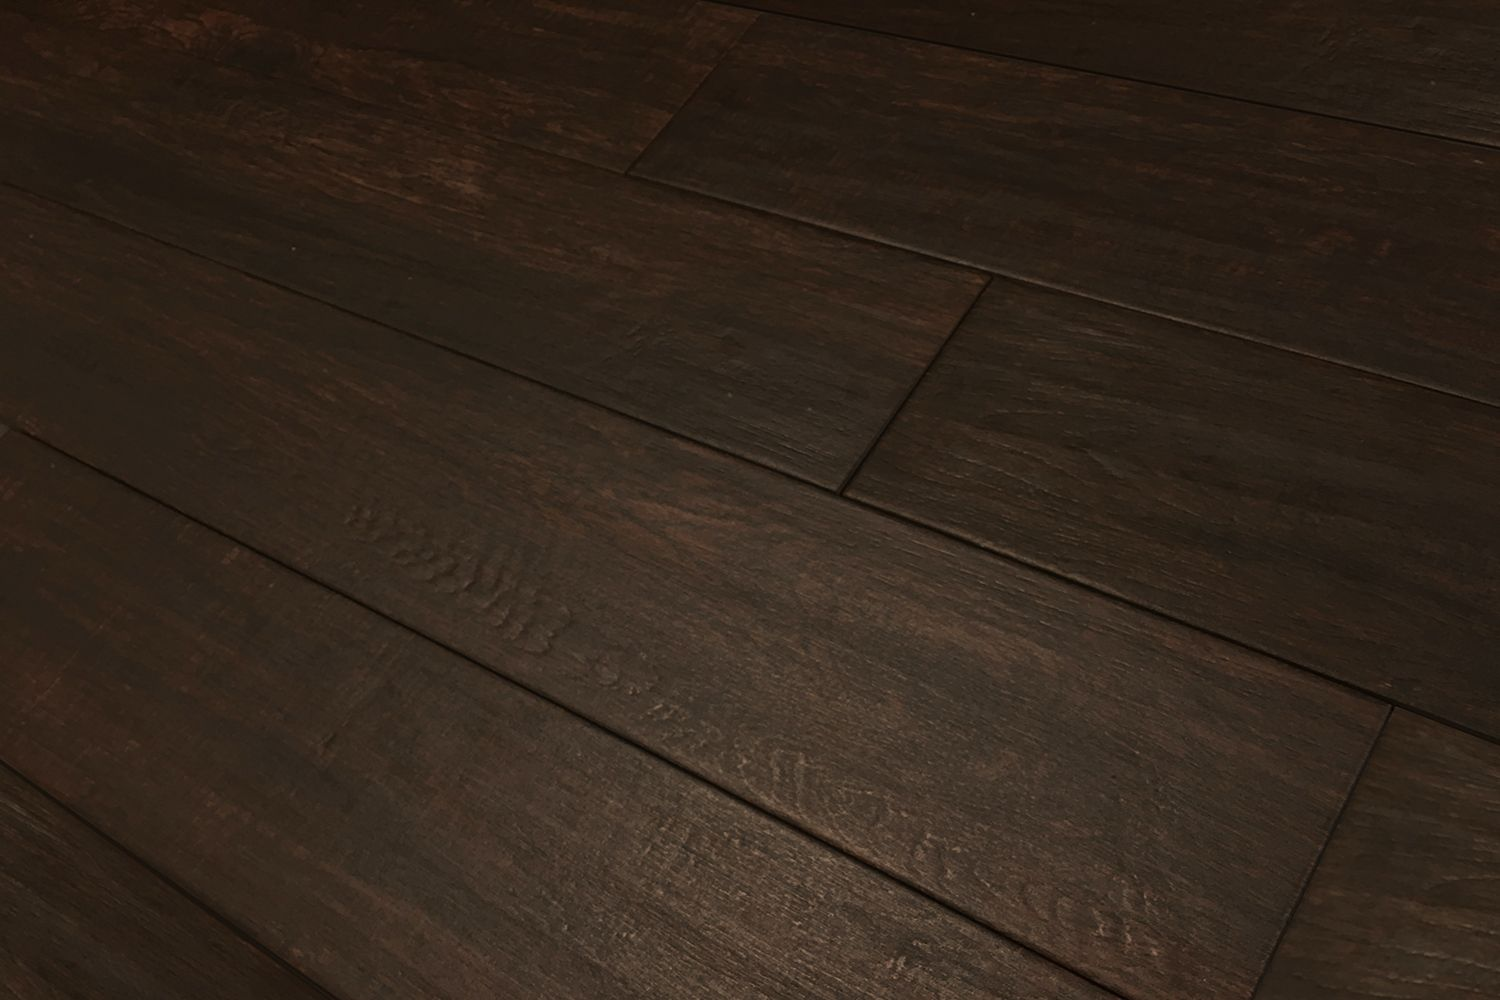 Texas Caoba 6 In X 36 Porcelain Wood Tile